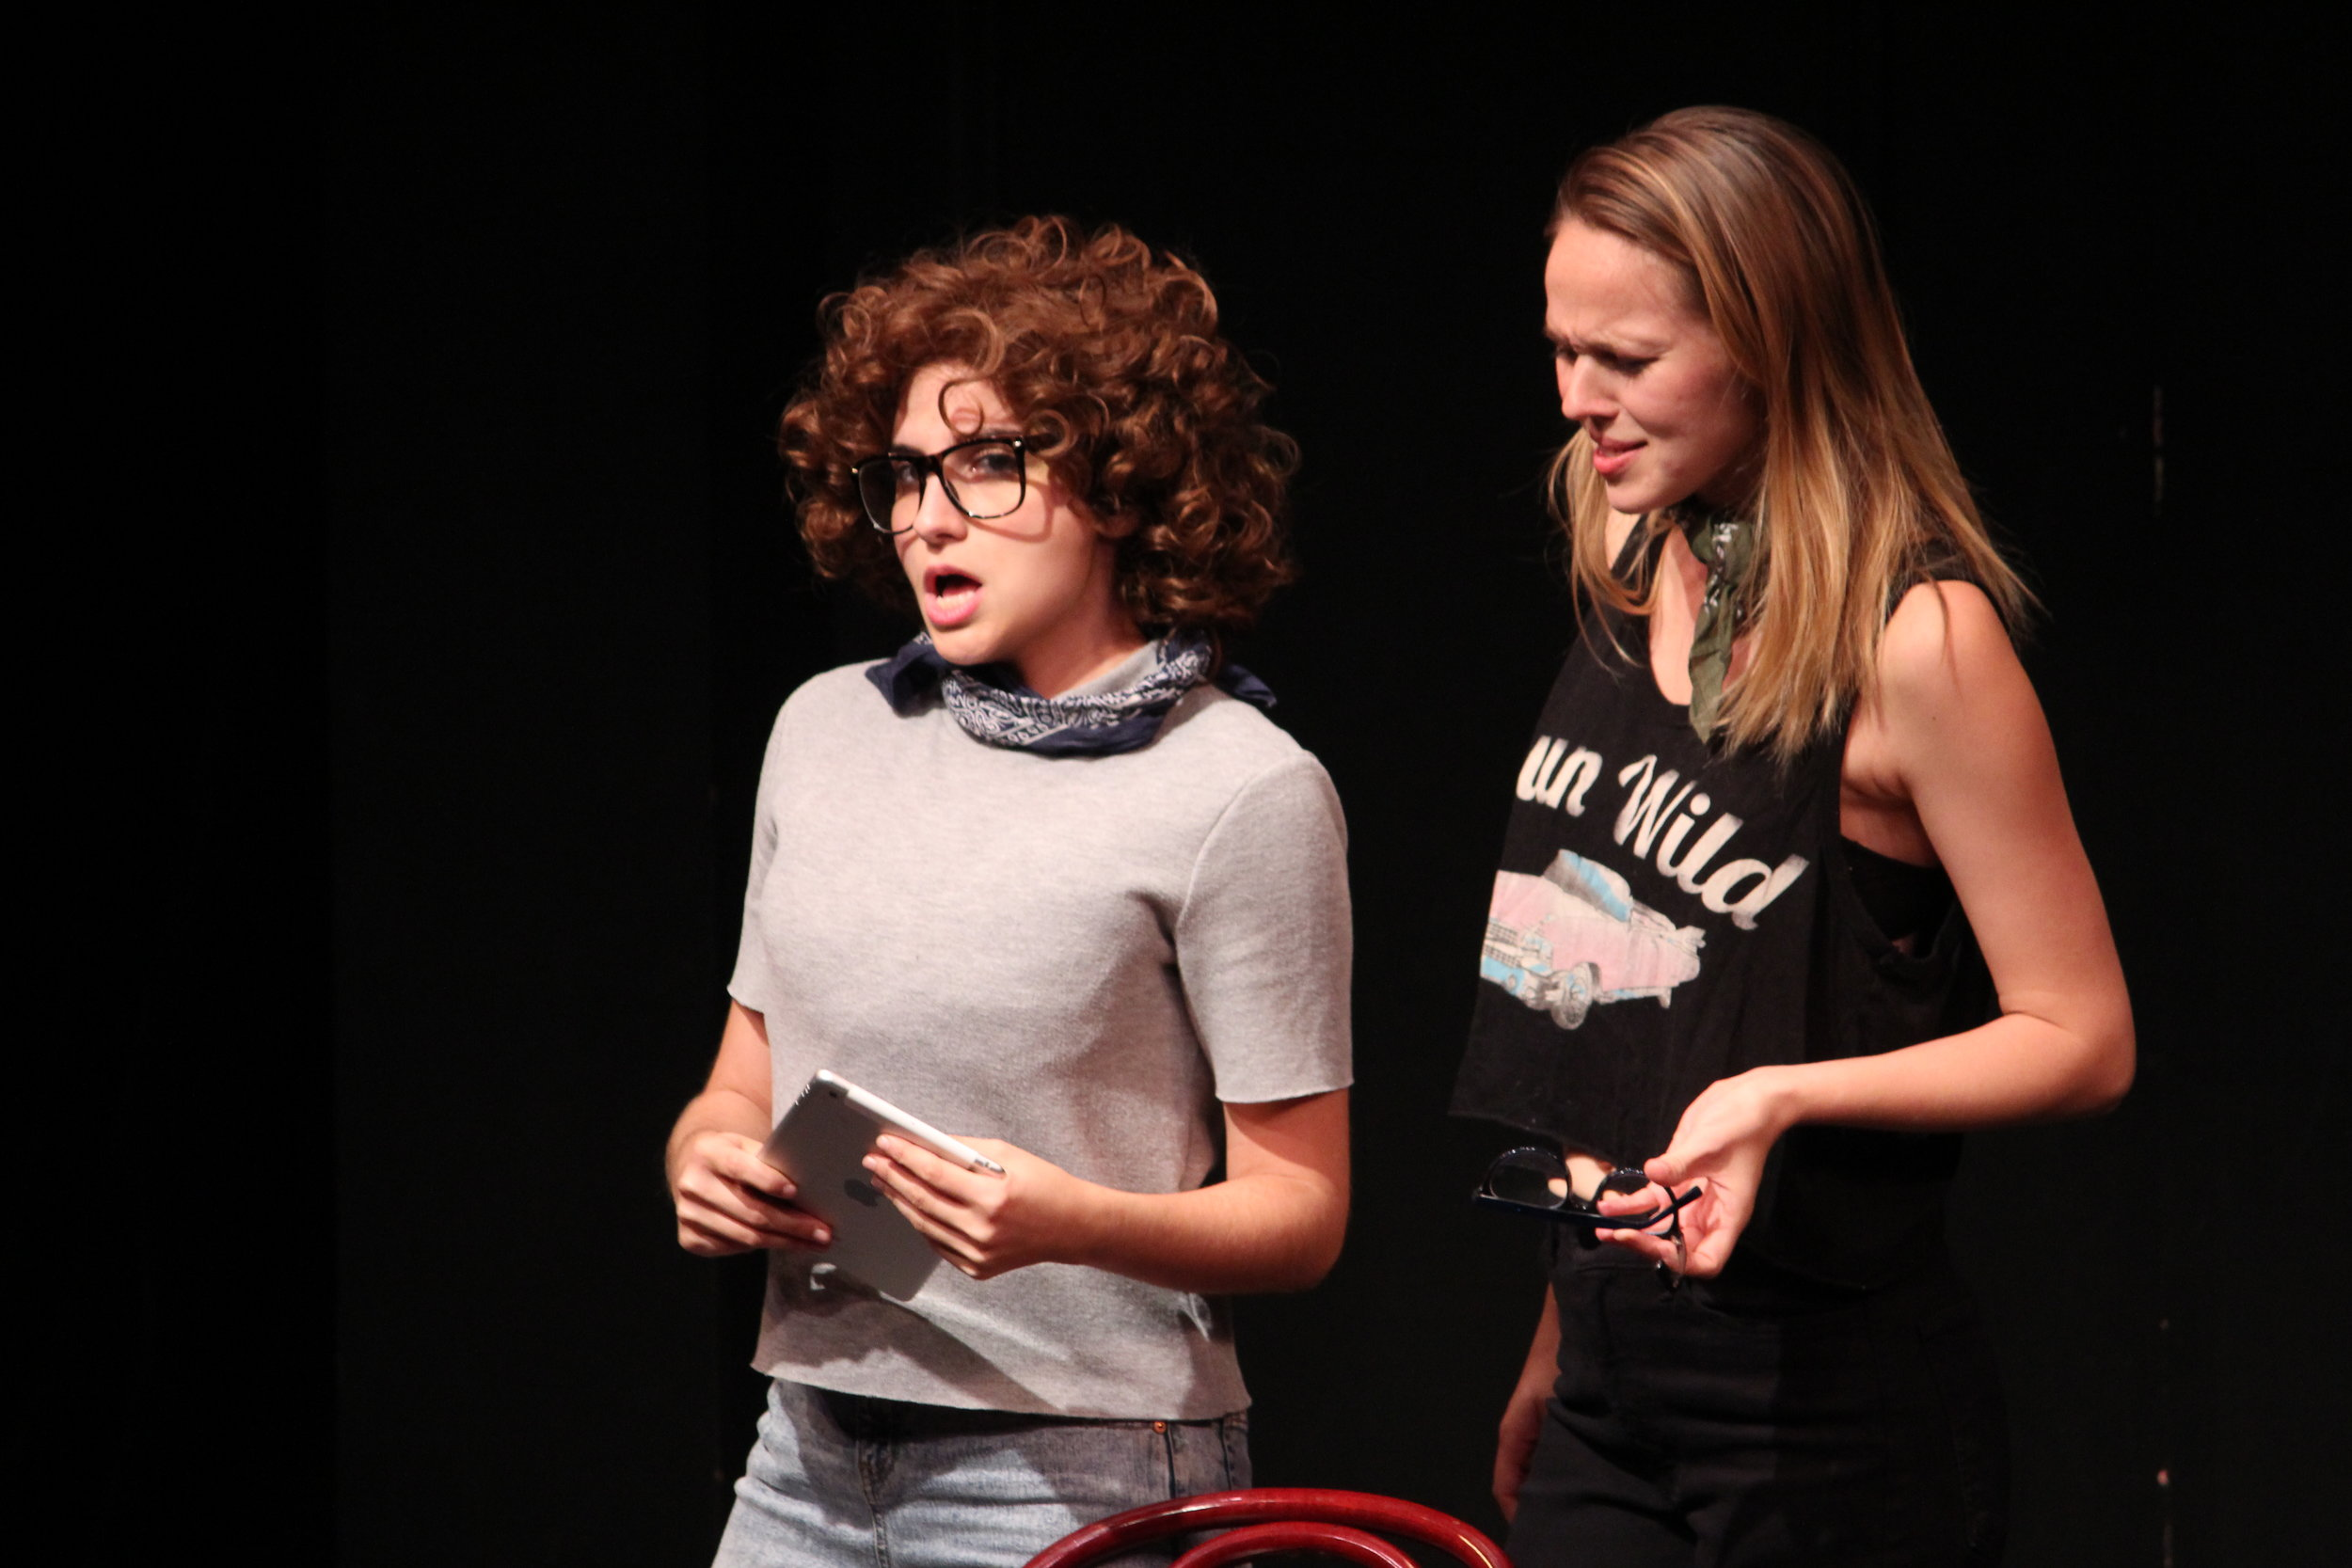 'Yes She Cannes!' at Upright Citizens Brigade Theatre, Hell's Kitchen Written & Performed by Jackie Abbott & Ellen Haun